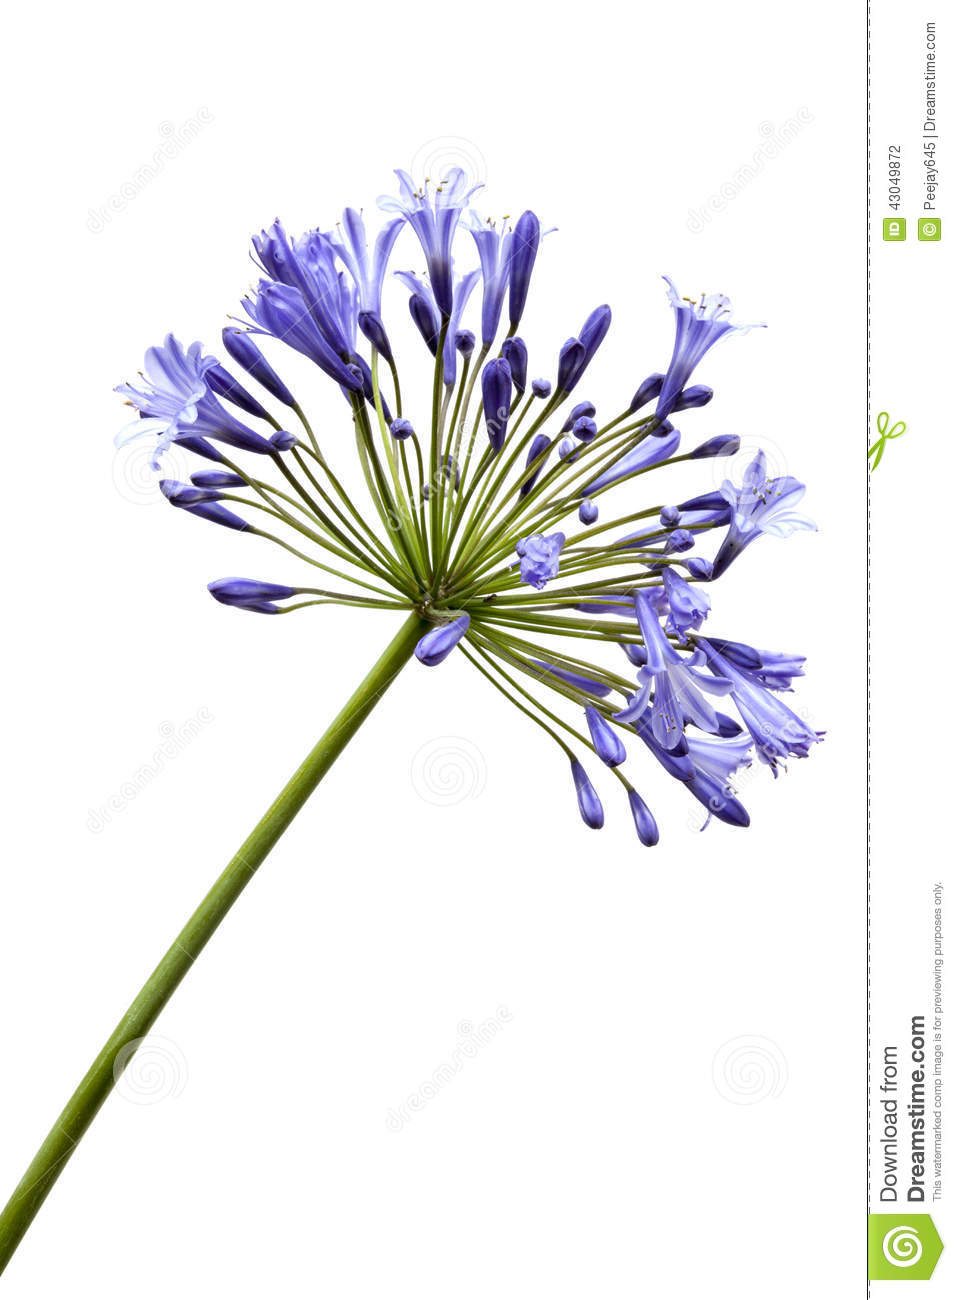 Agapanthus Flower Clipart Clipground